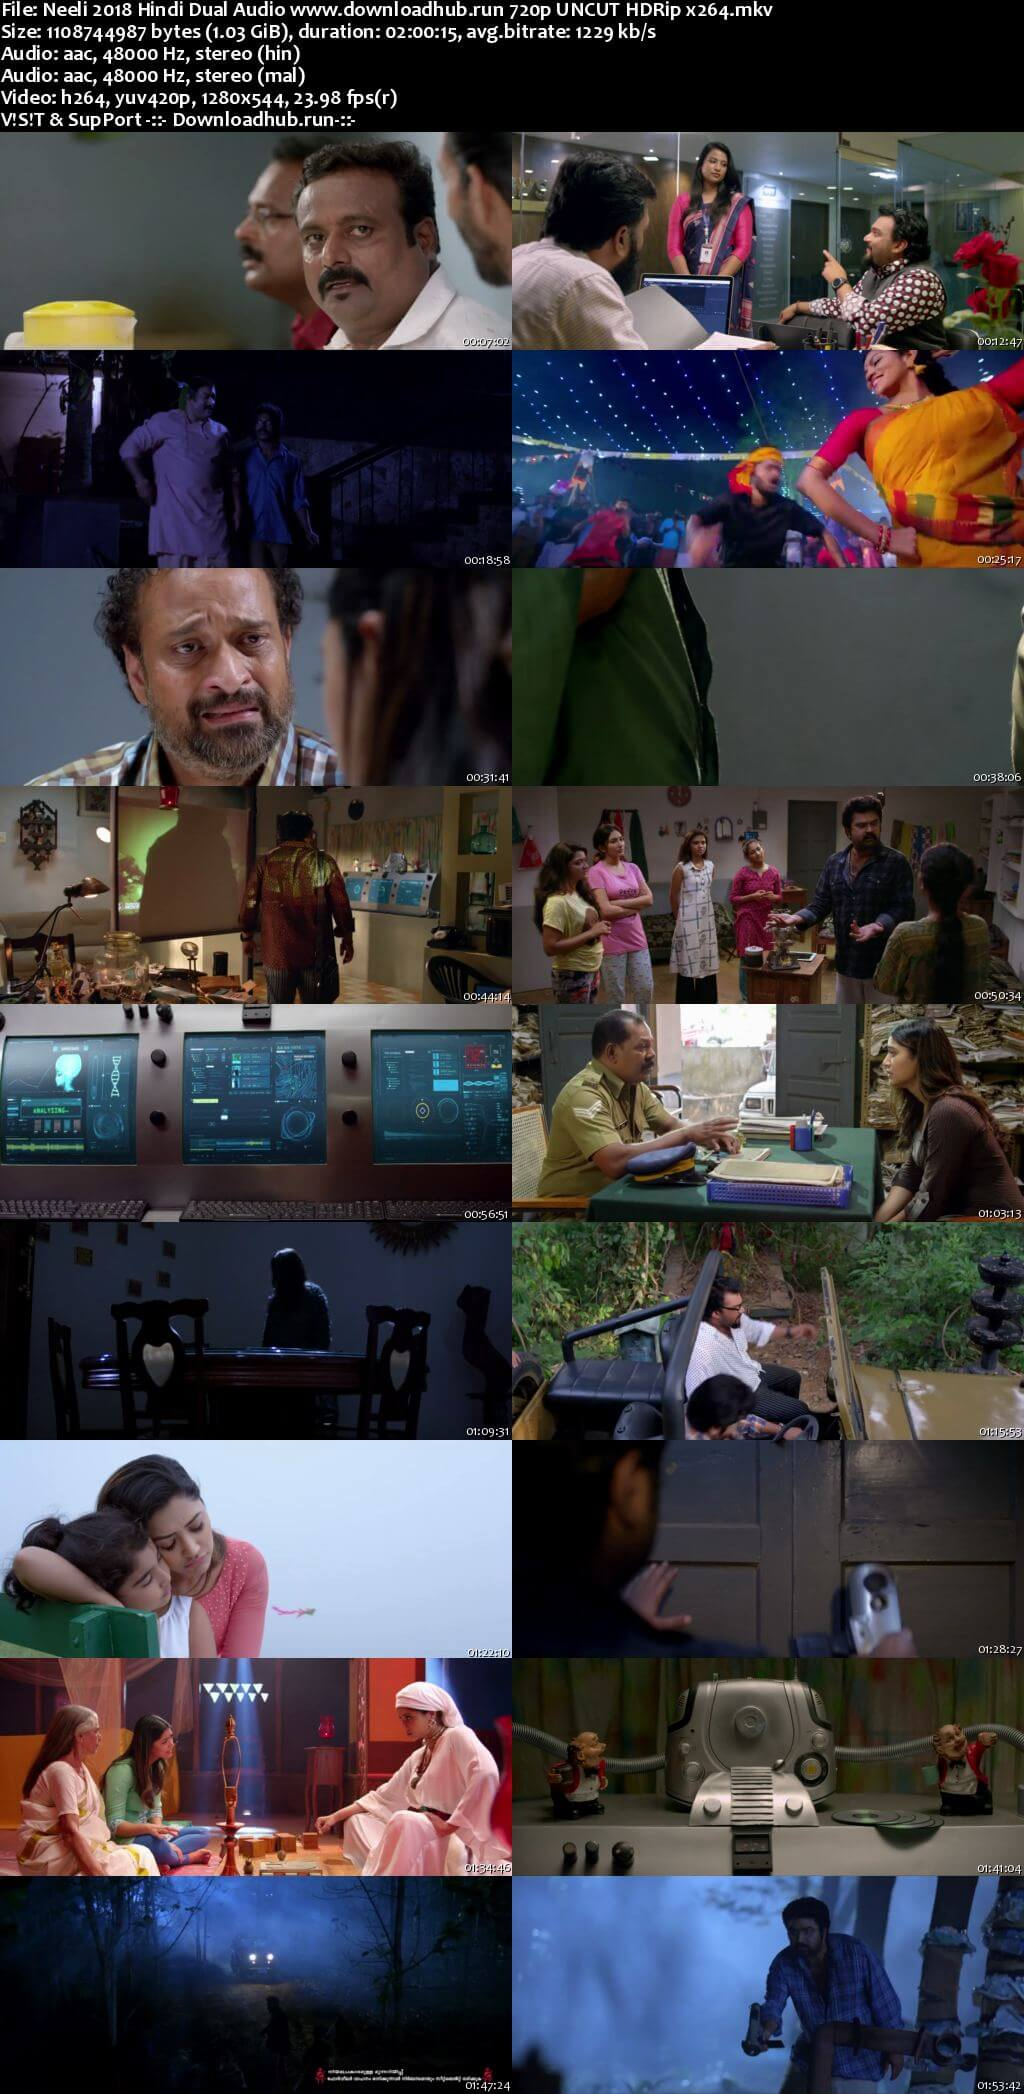 Neeli 2018 Hindi Dual Audio 720p UNCUT HDRip x264